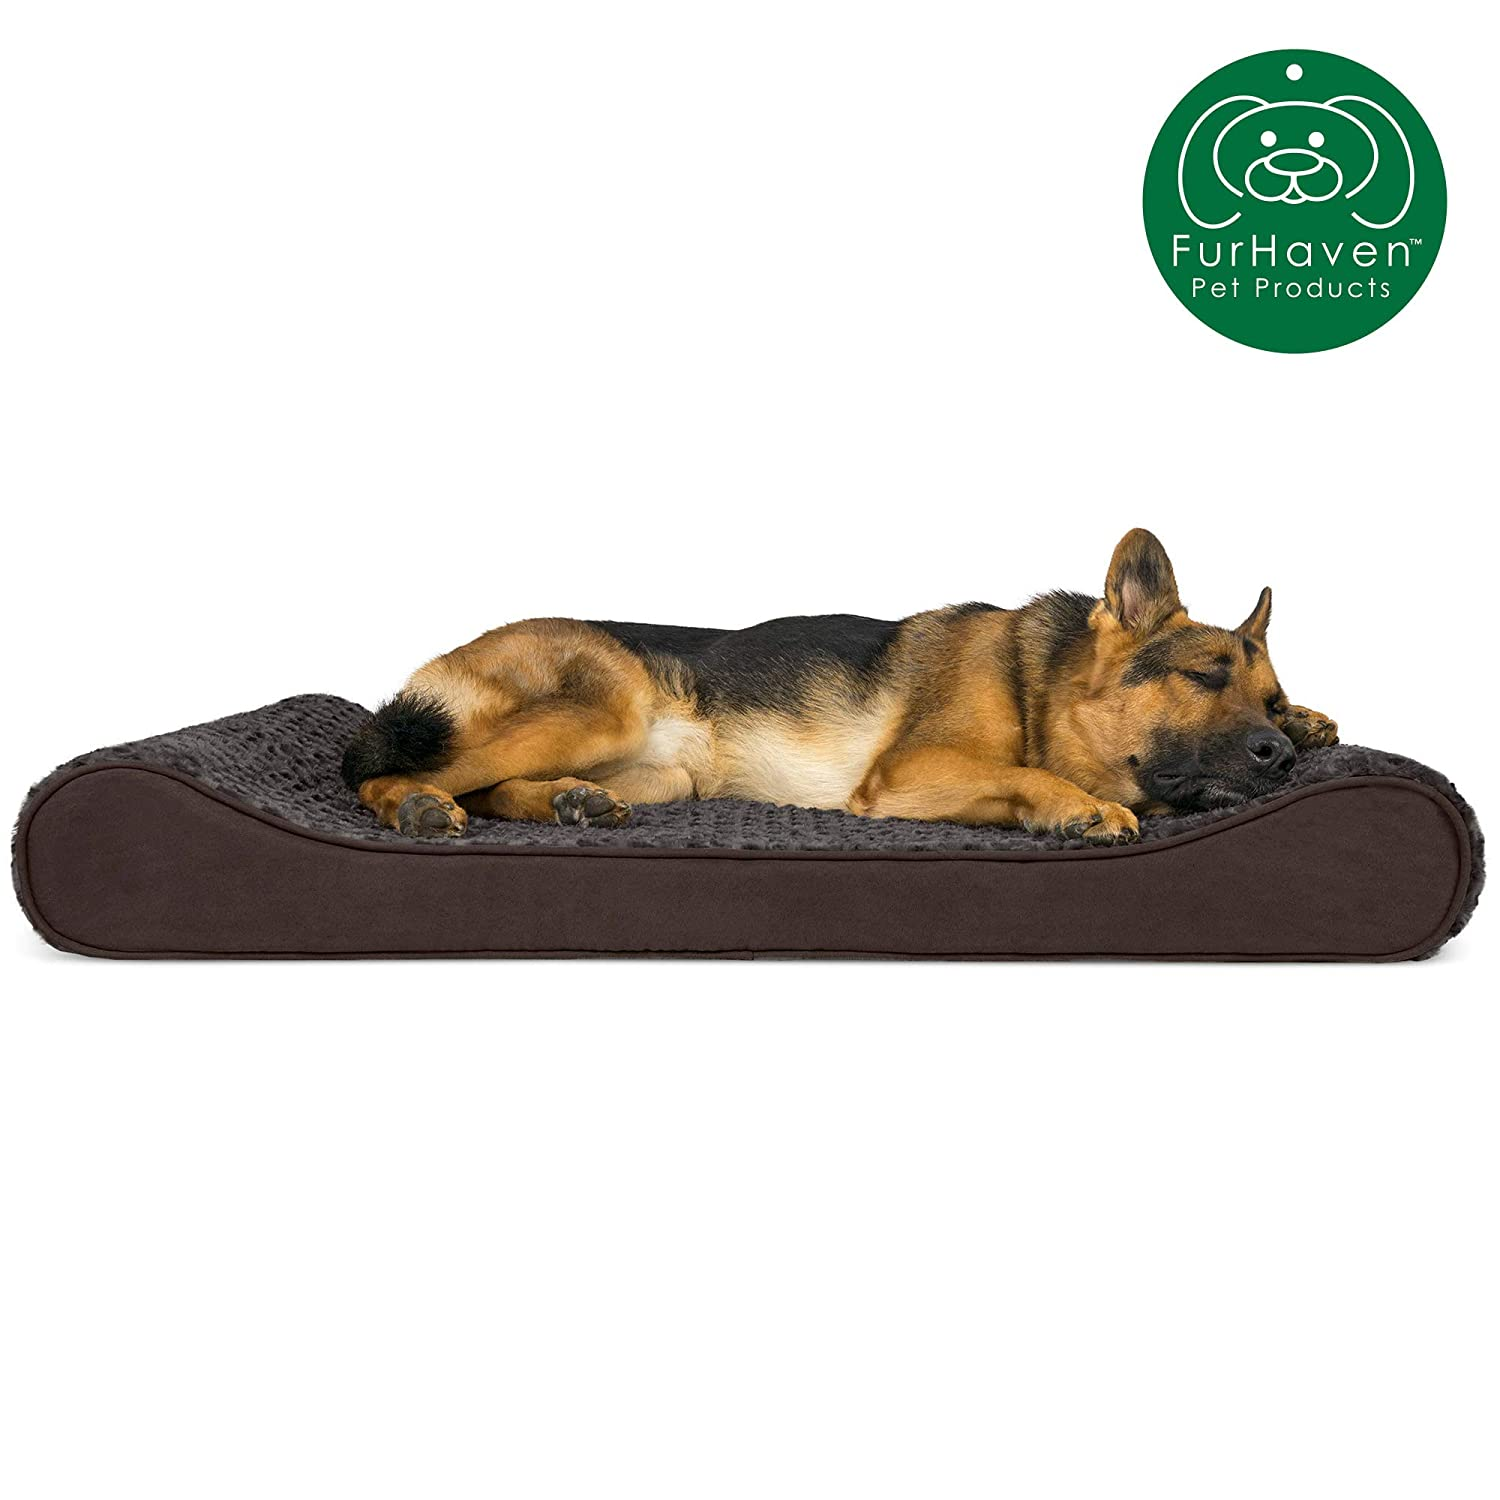 Furhaven Pet Dog Bed Orthopedic Ergonomic Luxe Lounger Cradle Mattress Pet Bed w Removable Cover for Dogs Cats – Available in Multiple Colors Styles